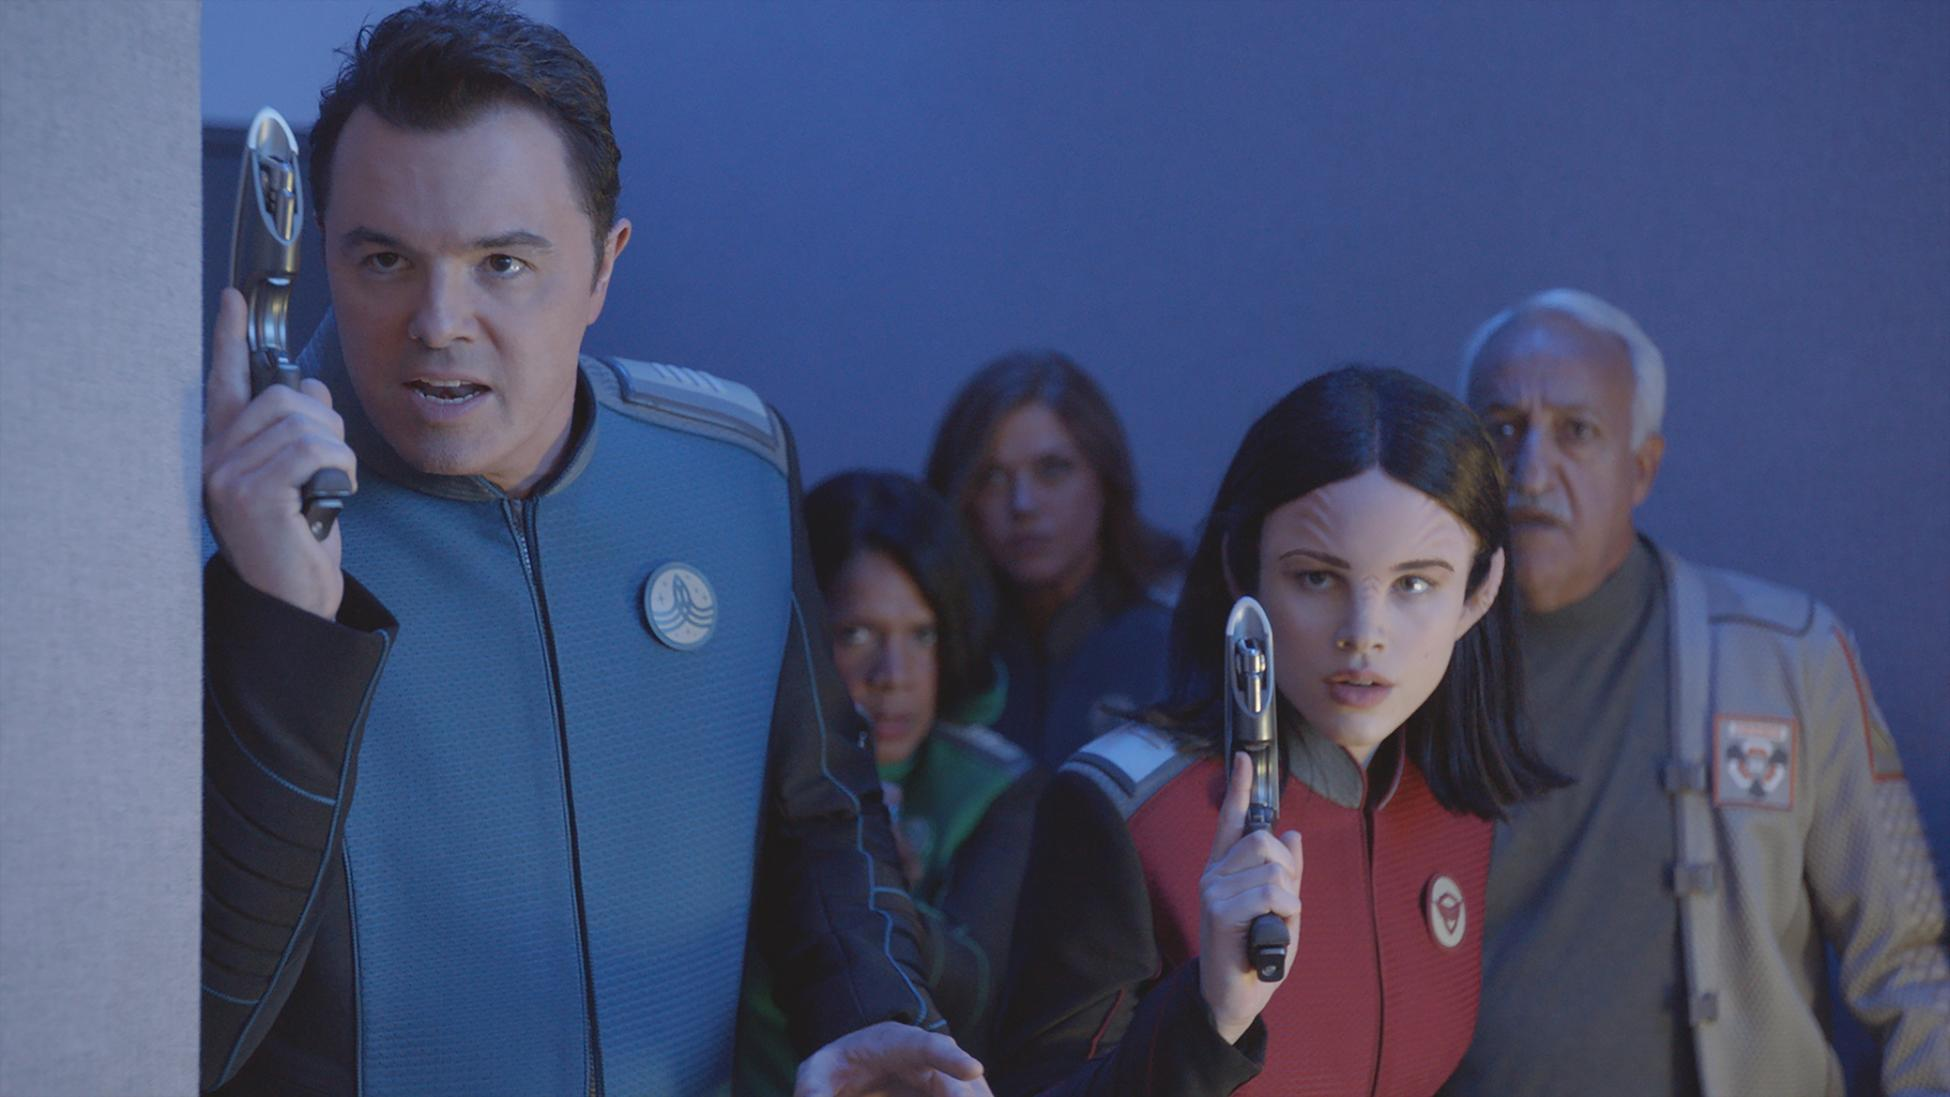 Seth Macfarlane Gives Fans Update On The Orville Season 3 We Re Working On It Very Hard Besides this with you, we are just starting writing our next script, which i feel like we may have started yesterday but then we just ended up watching misery because the episode is three different stephen king stories. yahoo finance